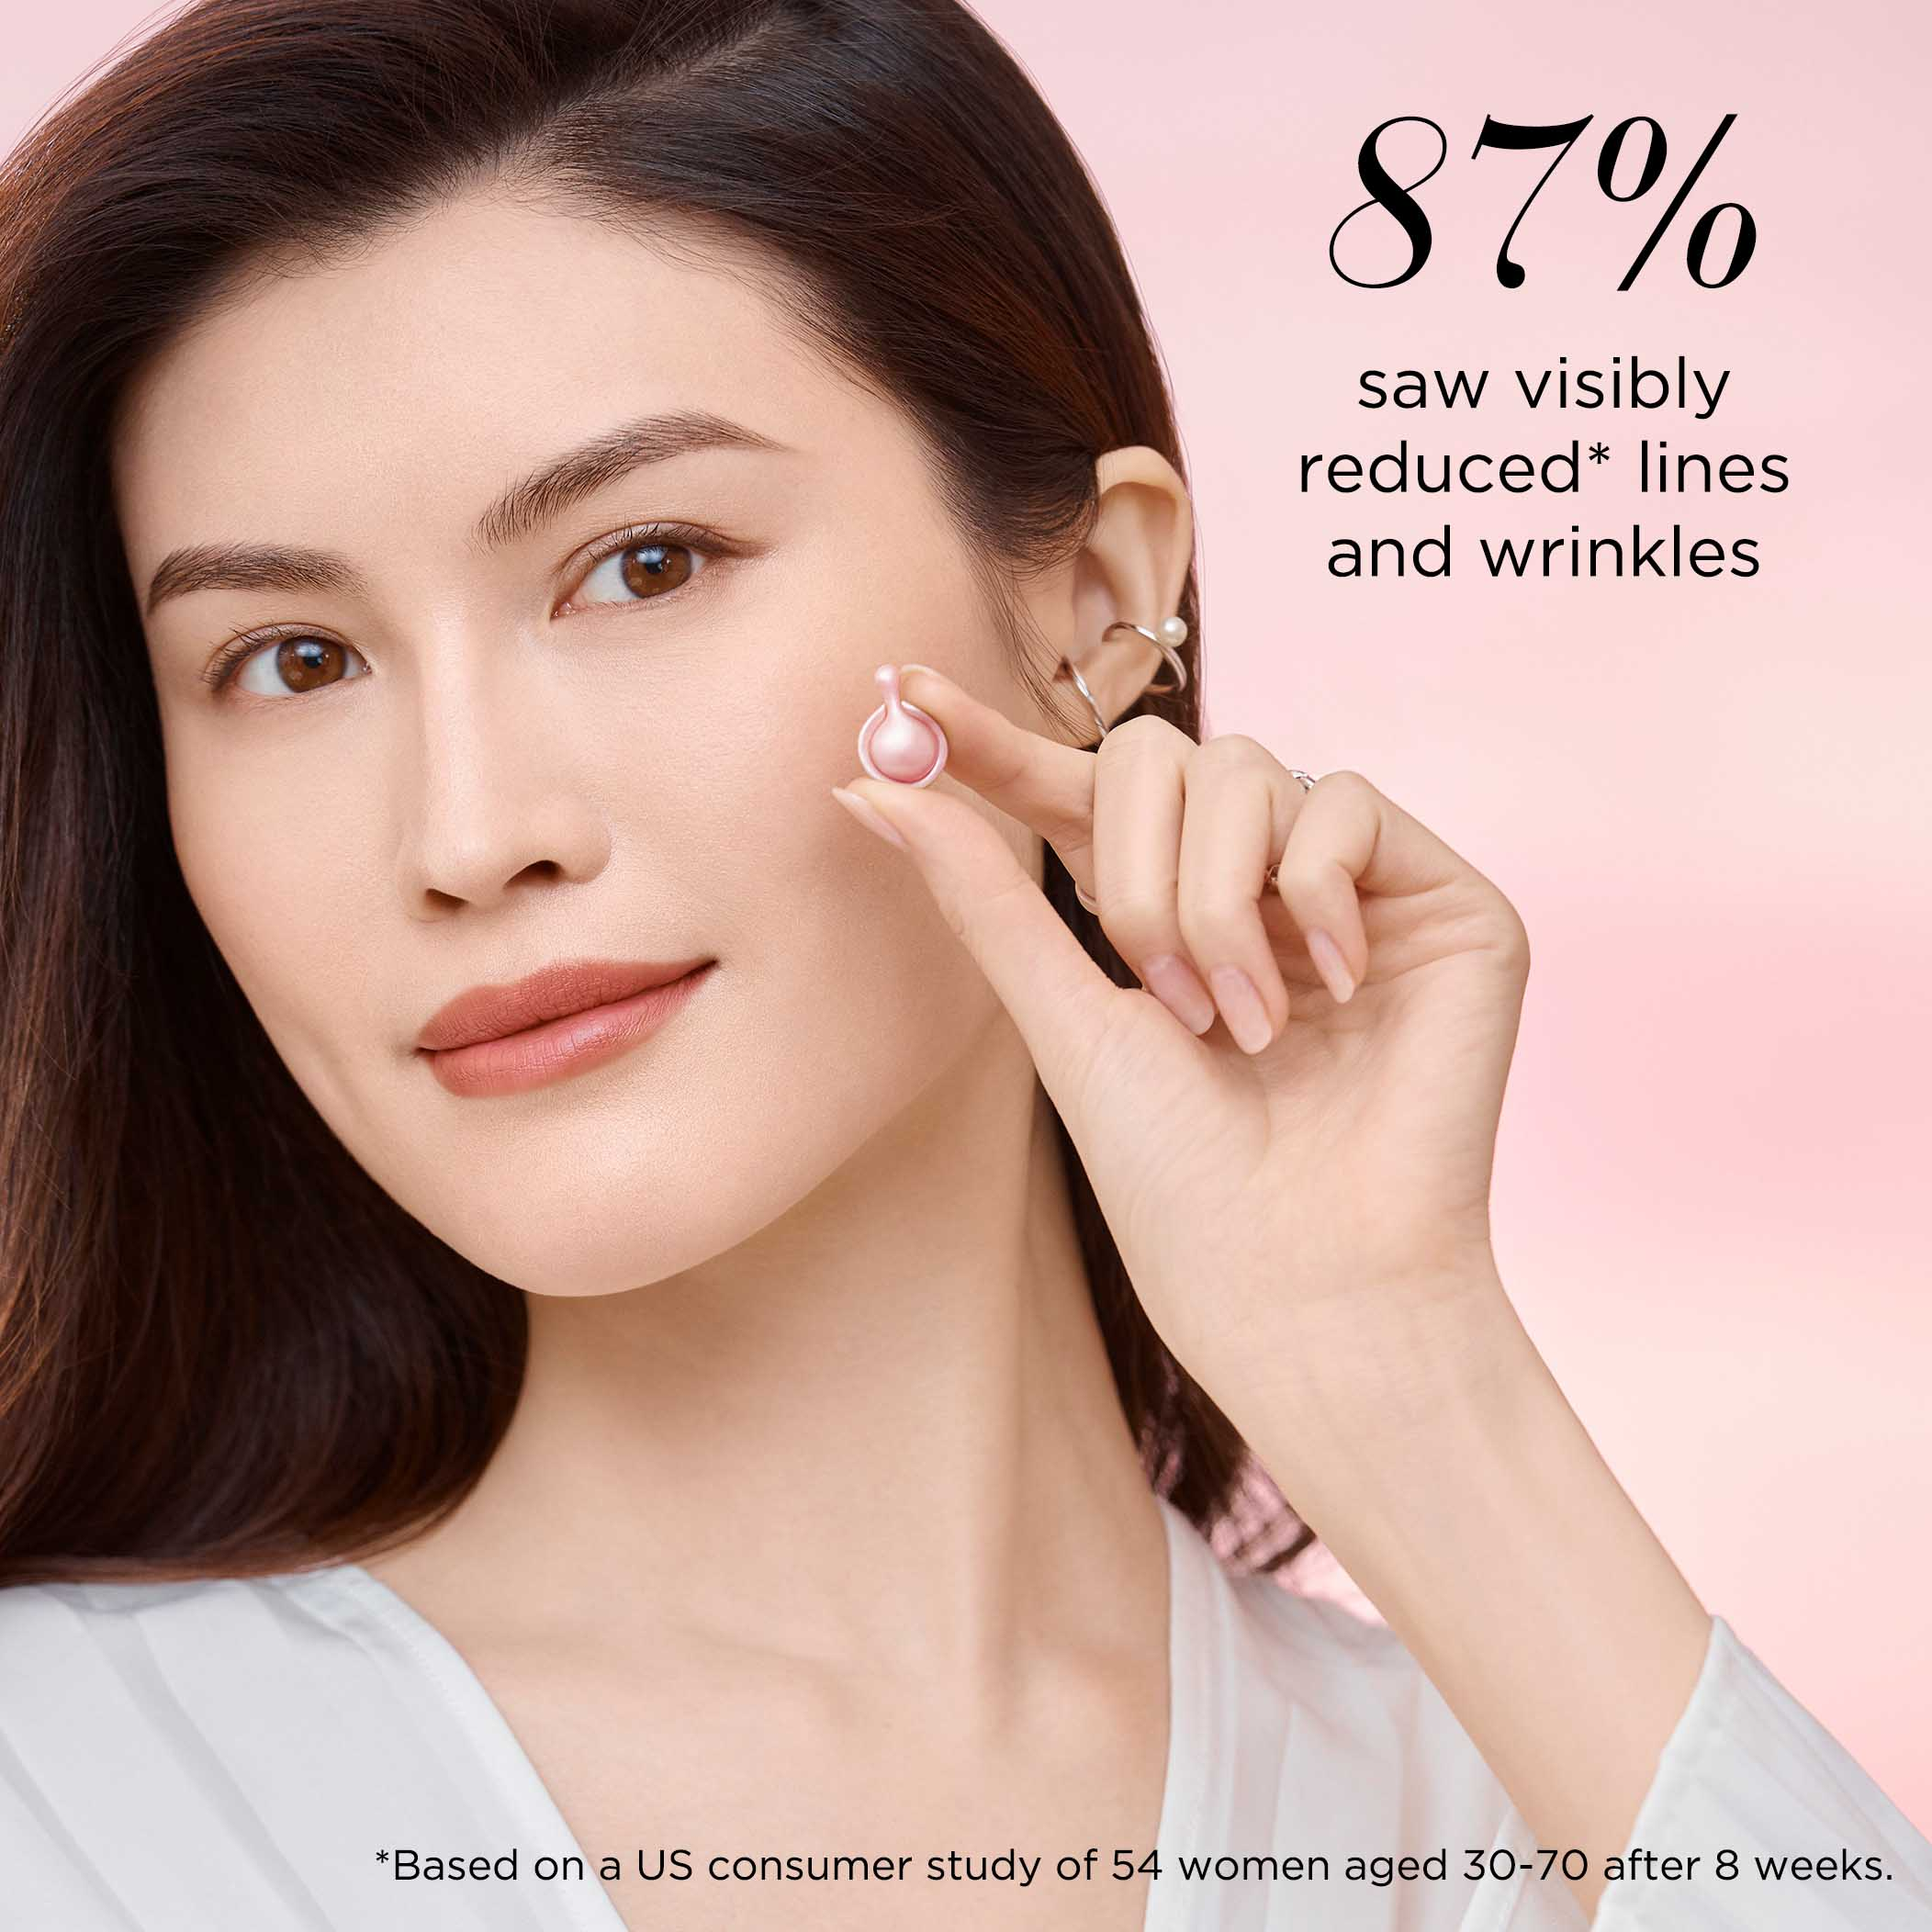 87% saw visibly reduced* lines and wrinkles based on a US consumer study of 54 women aged 30-70 after 8 weeks.